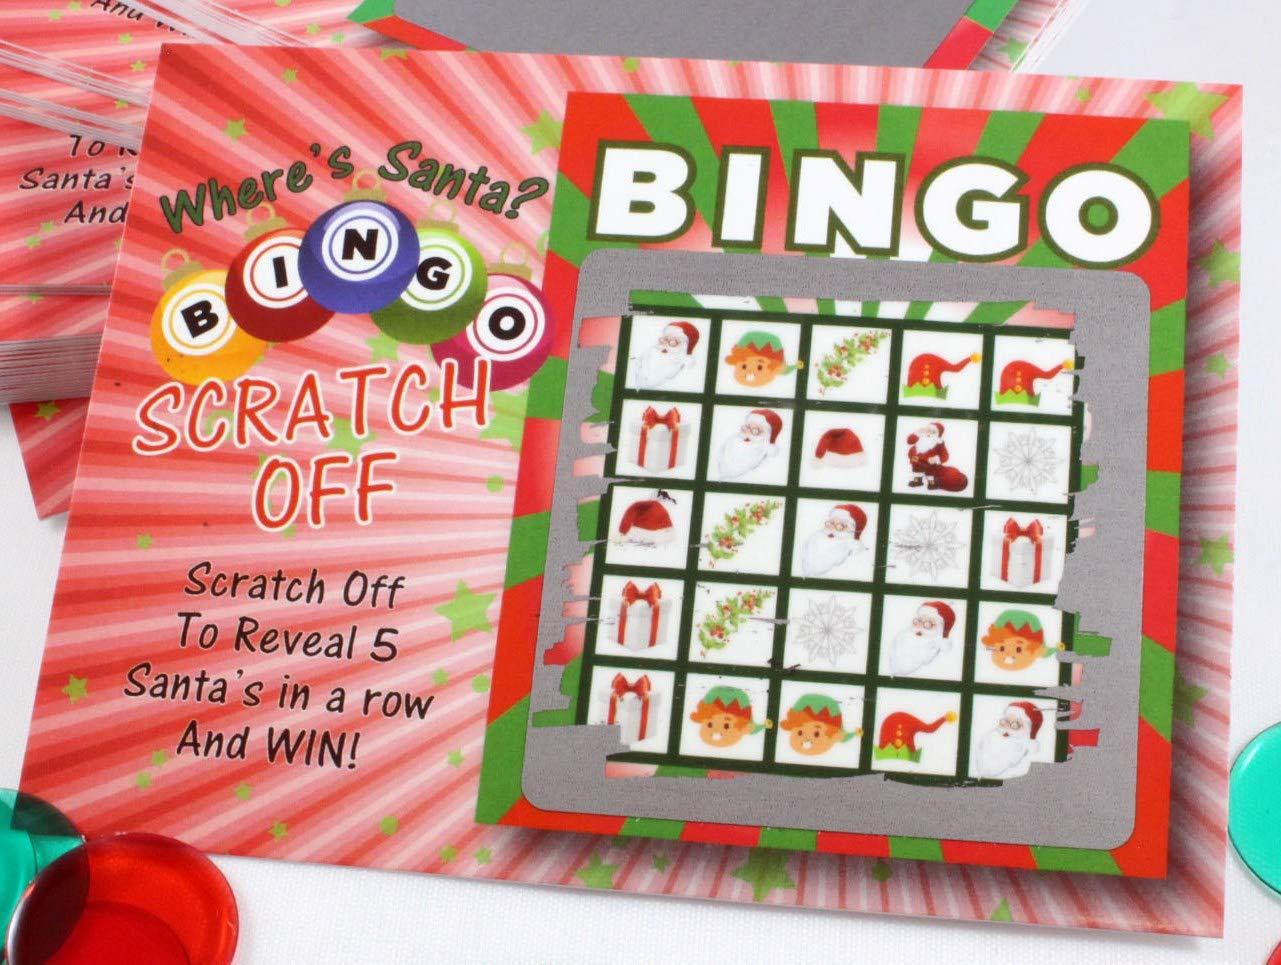 Santa Bingo Christmas Scratch Off Game Cards Kids Adult Holiday Party Favors 26 Cards (24 Non Bingo, 2 Bingo) My Scratch Offs